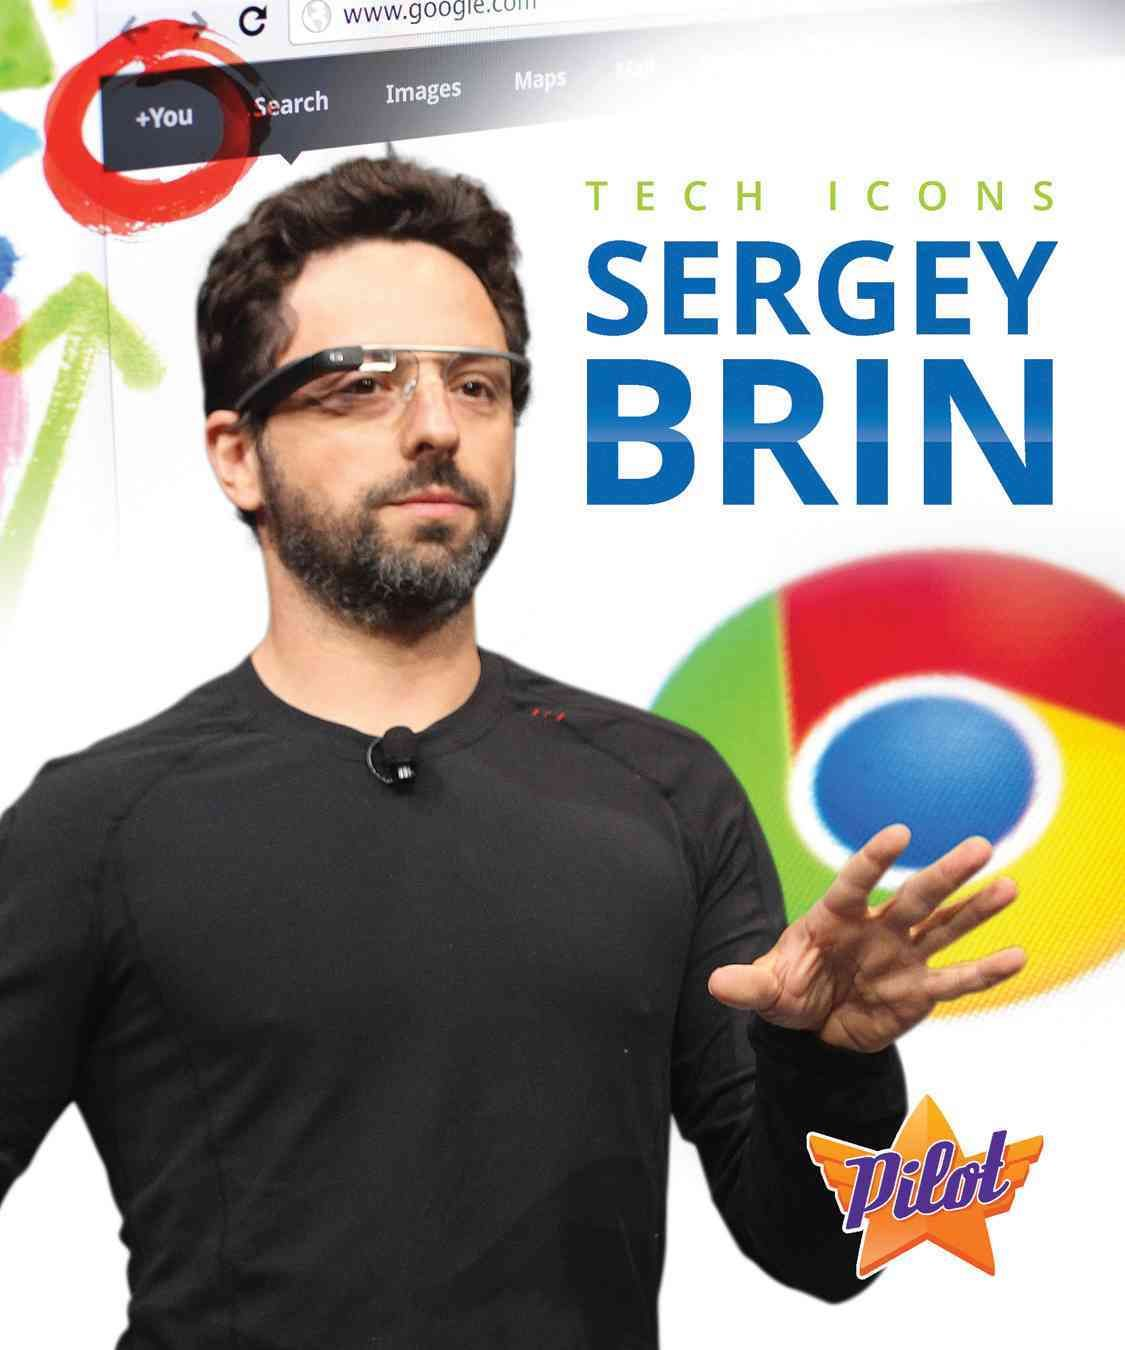 Sergey Brin GOOGLE 434 BILLON With images Hardcover Book 1125x1350